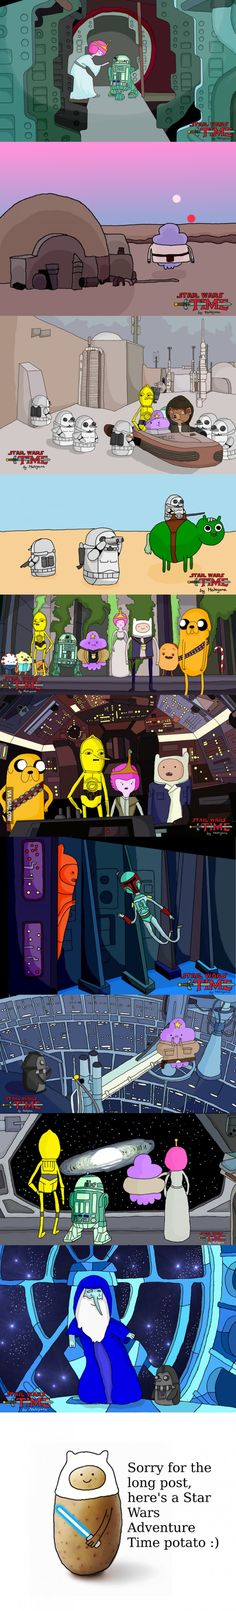 I made some Star Wars and Adventure Time crossovers, hope you guys enjoy!